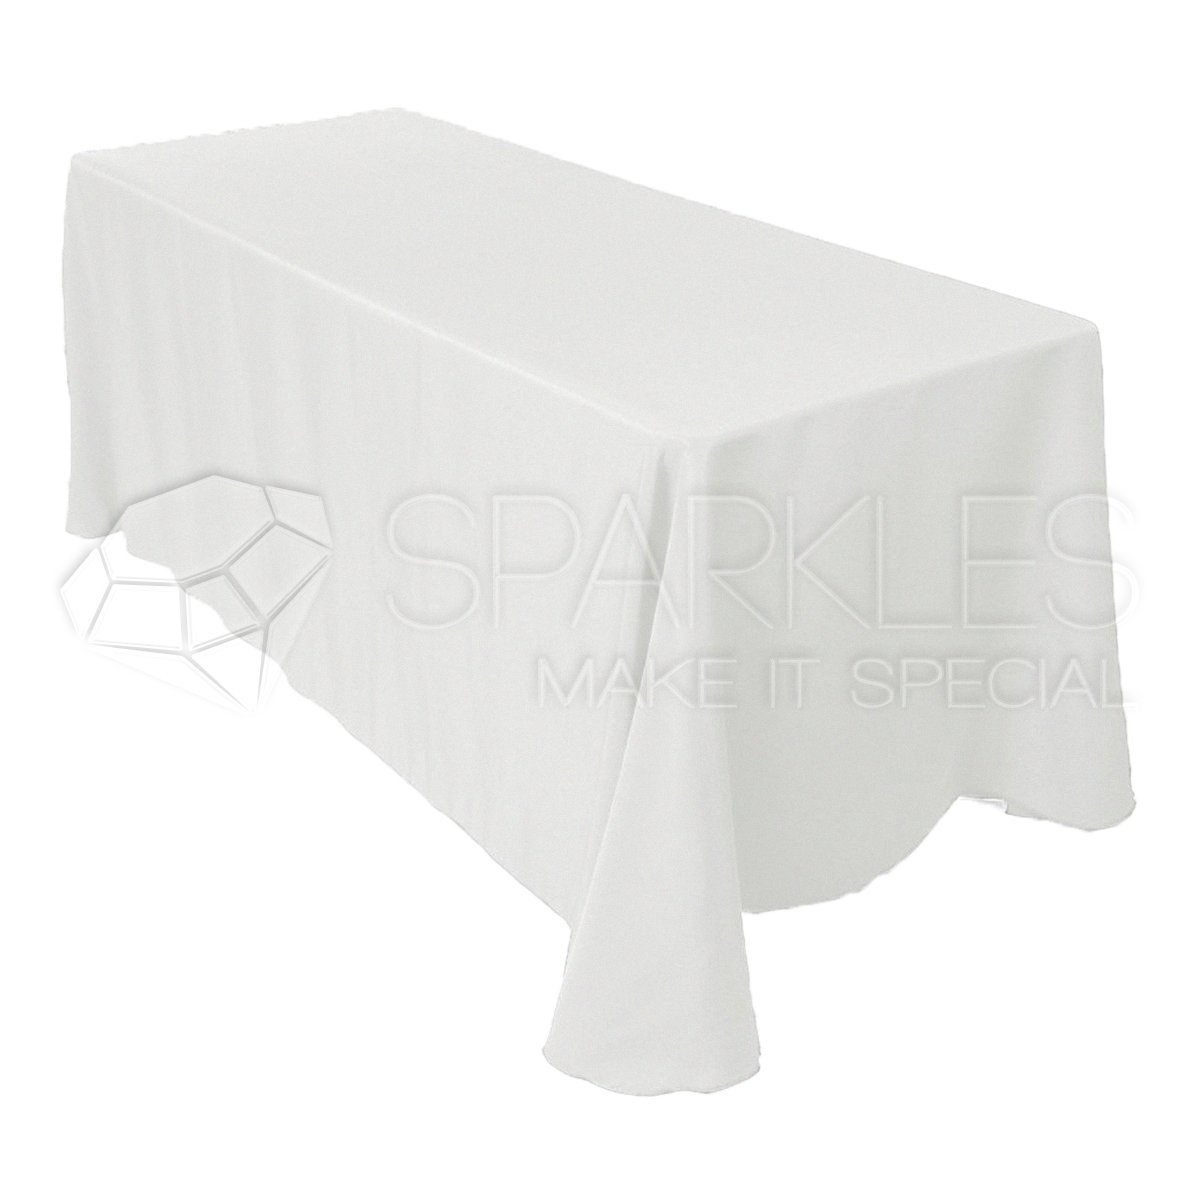 Sparkles Make It Special 10-pcs 90'' x 132'' Inch Rectangular Polyester Cloth Fabric Linen Tablecloth - Wedding Reception Restaurant Banquet Party - Machine Washable - Choice of Color - White